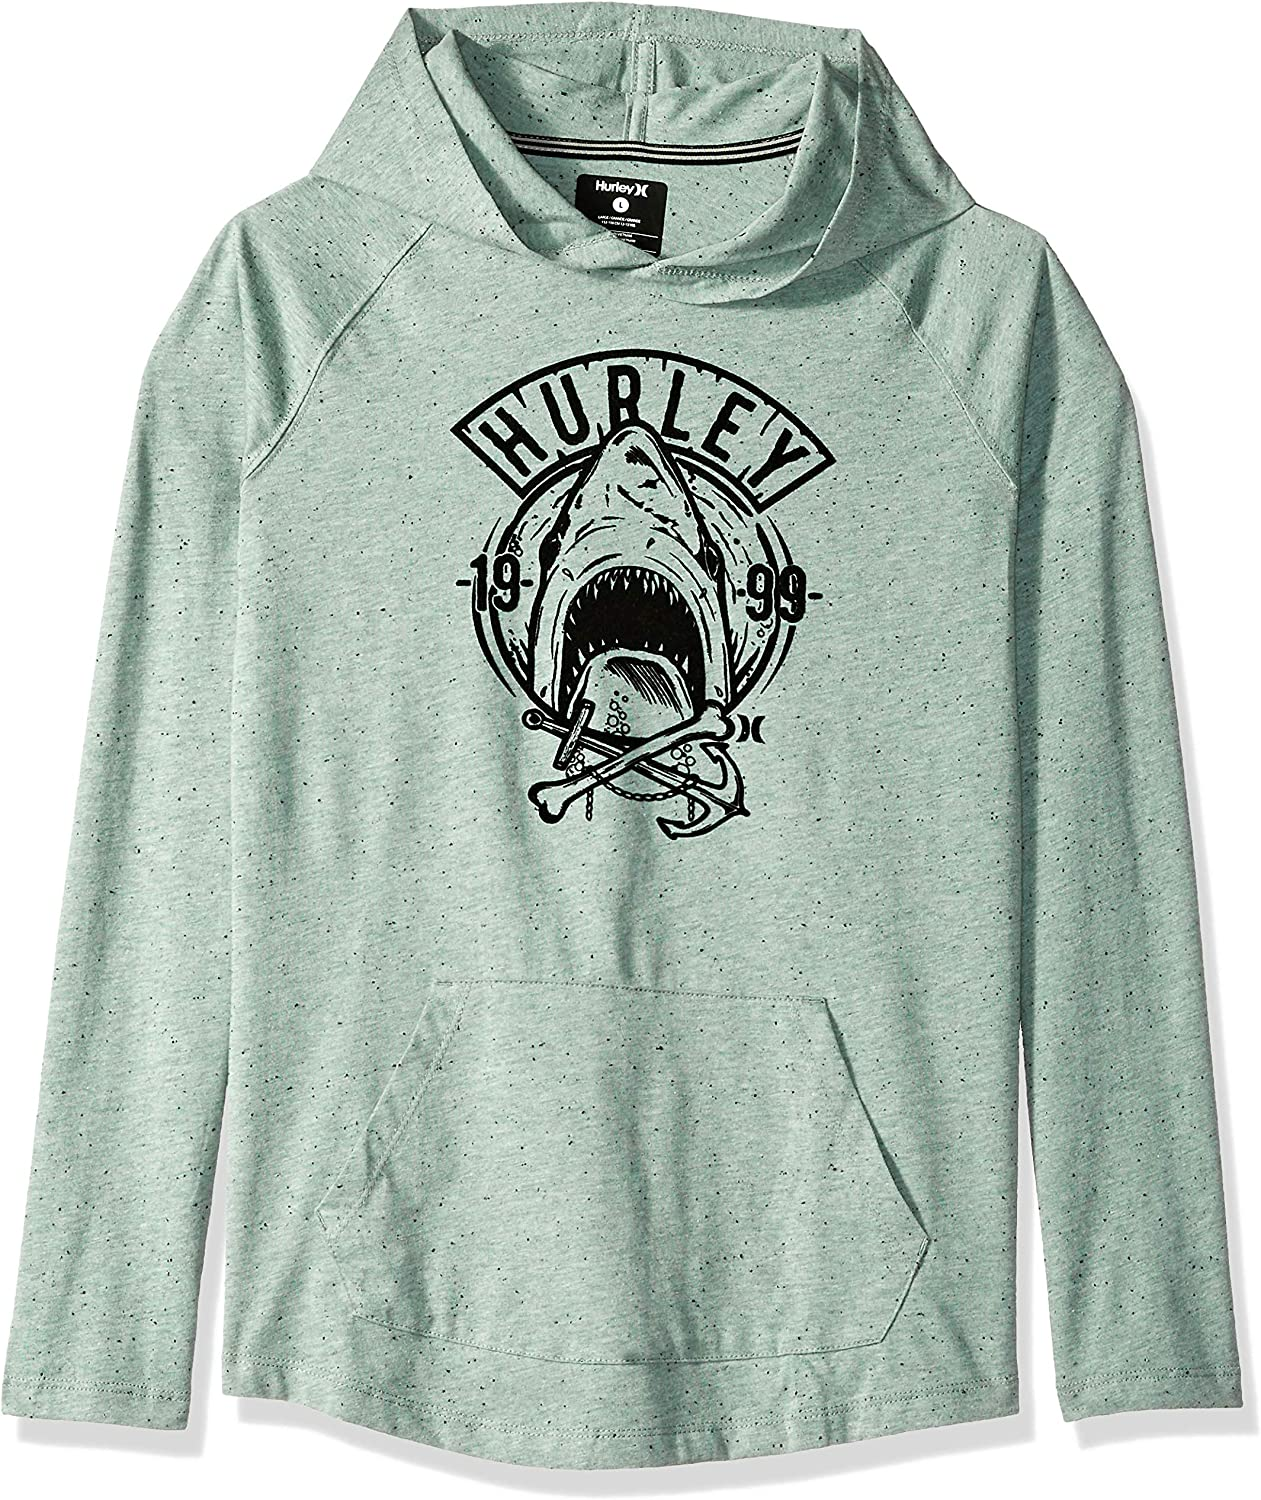 Hurley Outstanding Boys' Pullover Outlet SALE Hoodie